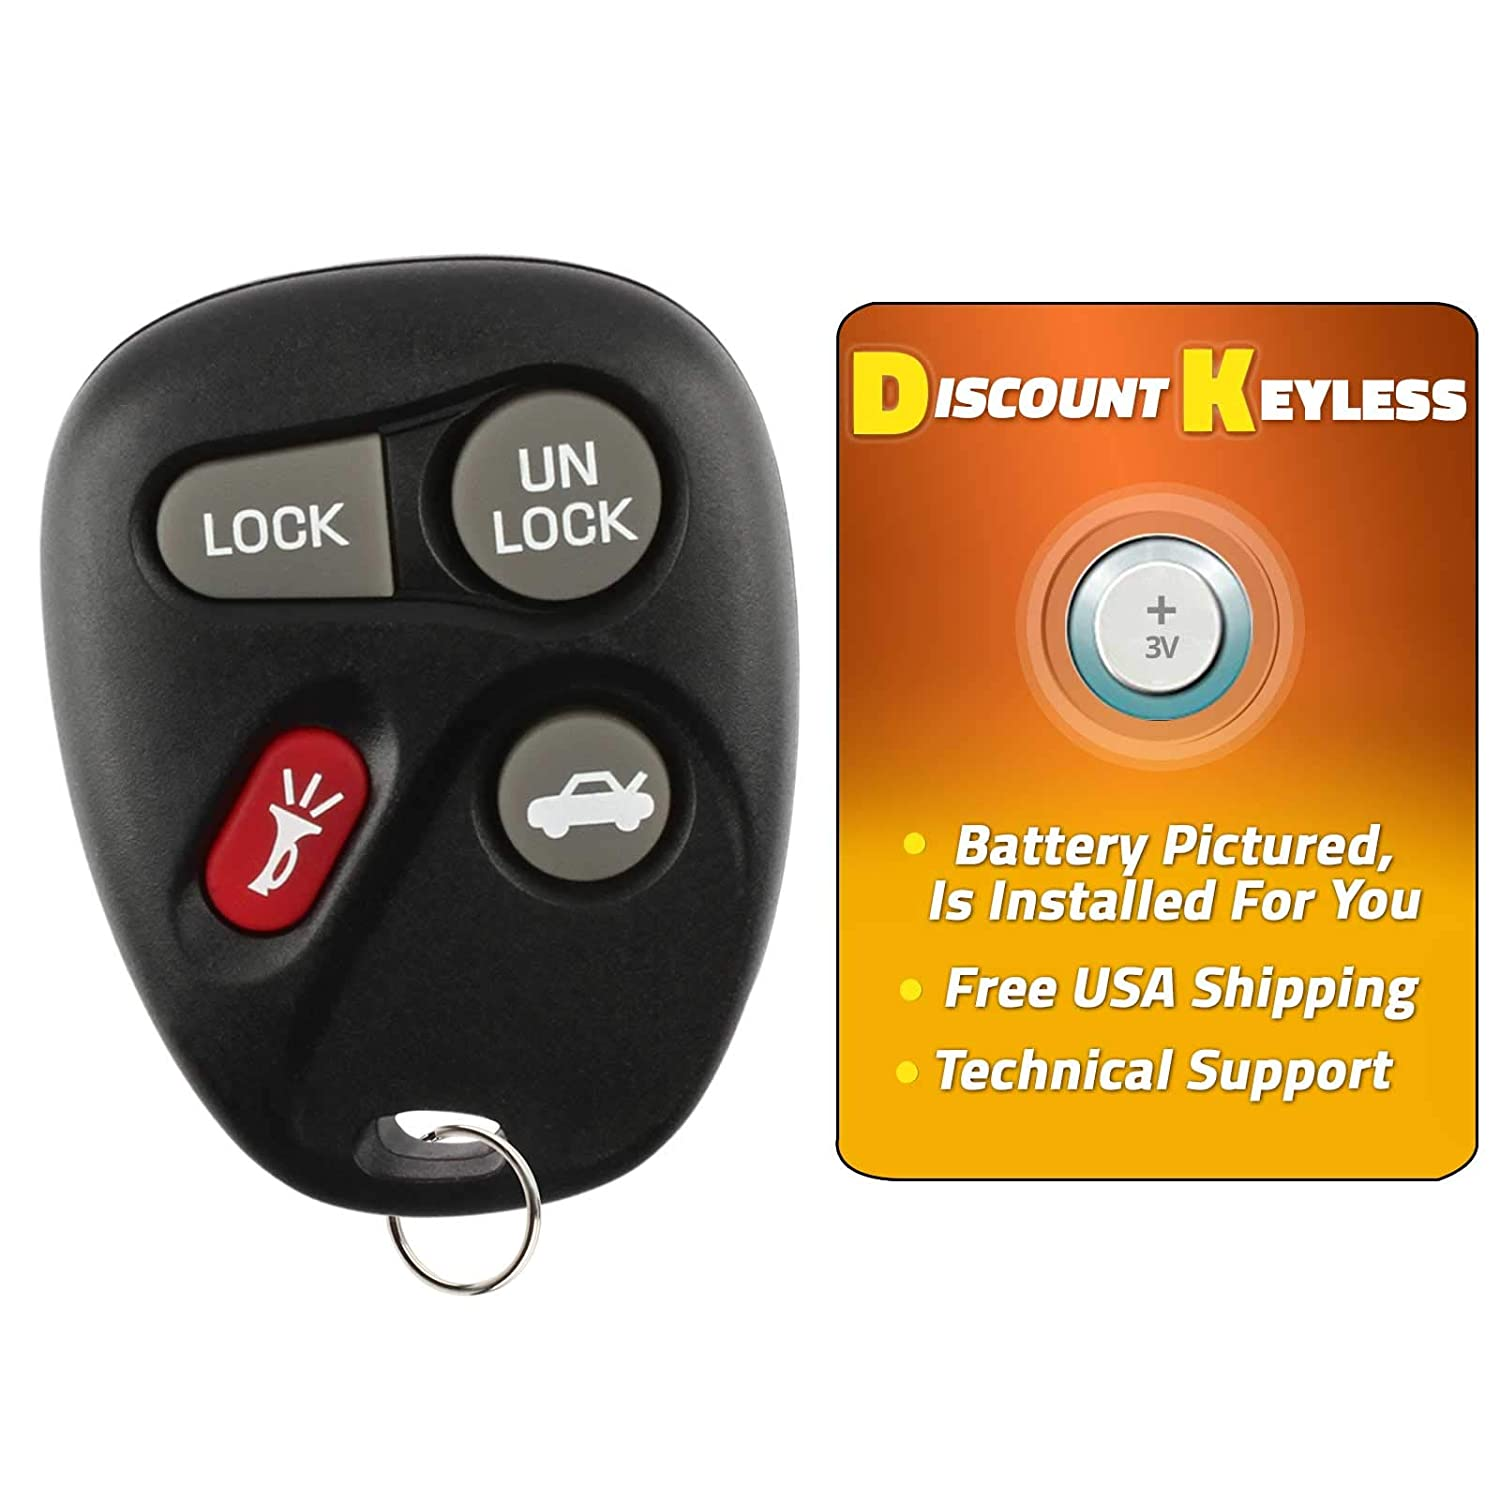 2 Pack Discount Keyless Replacement Key Fob Car Entry Remote For Buick Century Regal Intrigue Grand Prix 10246215